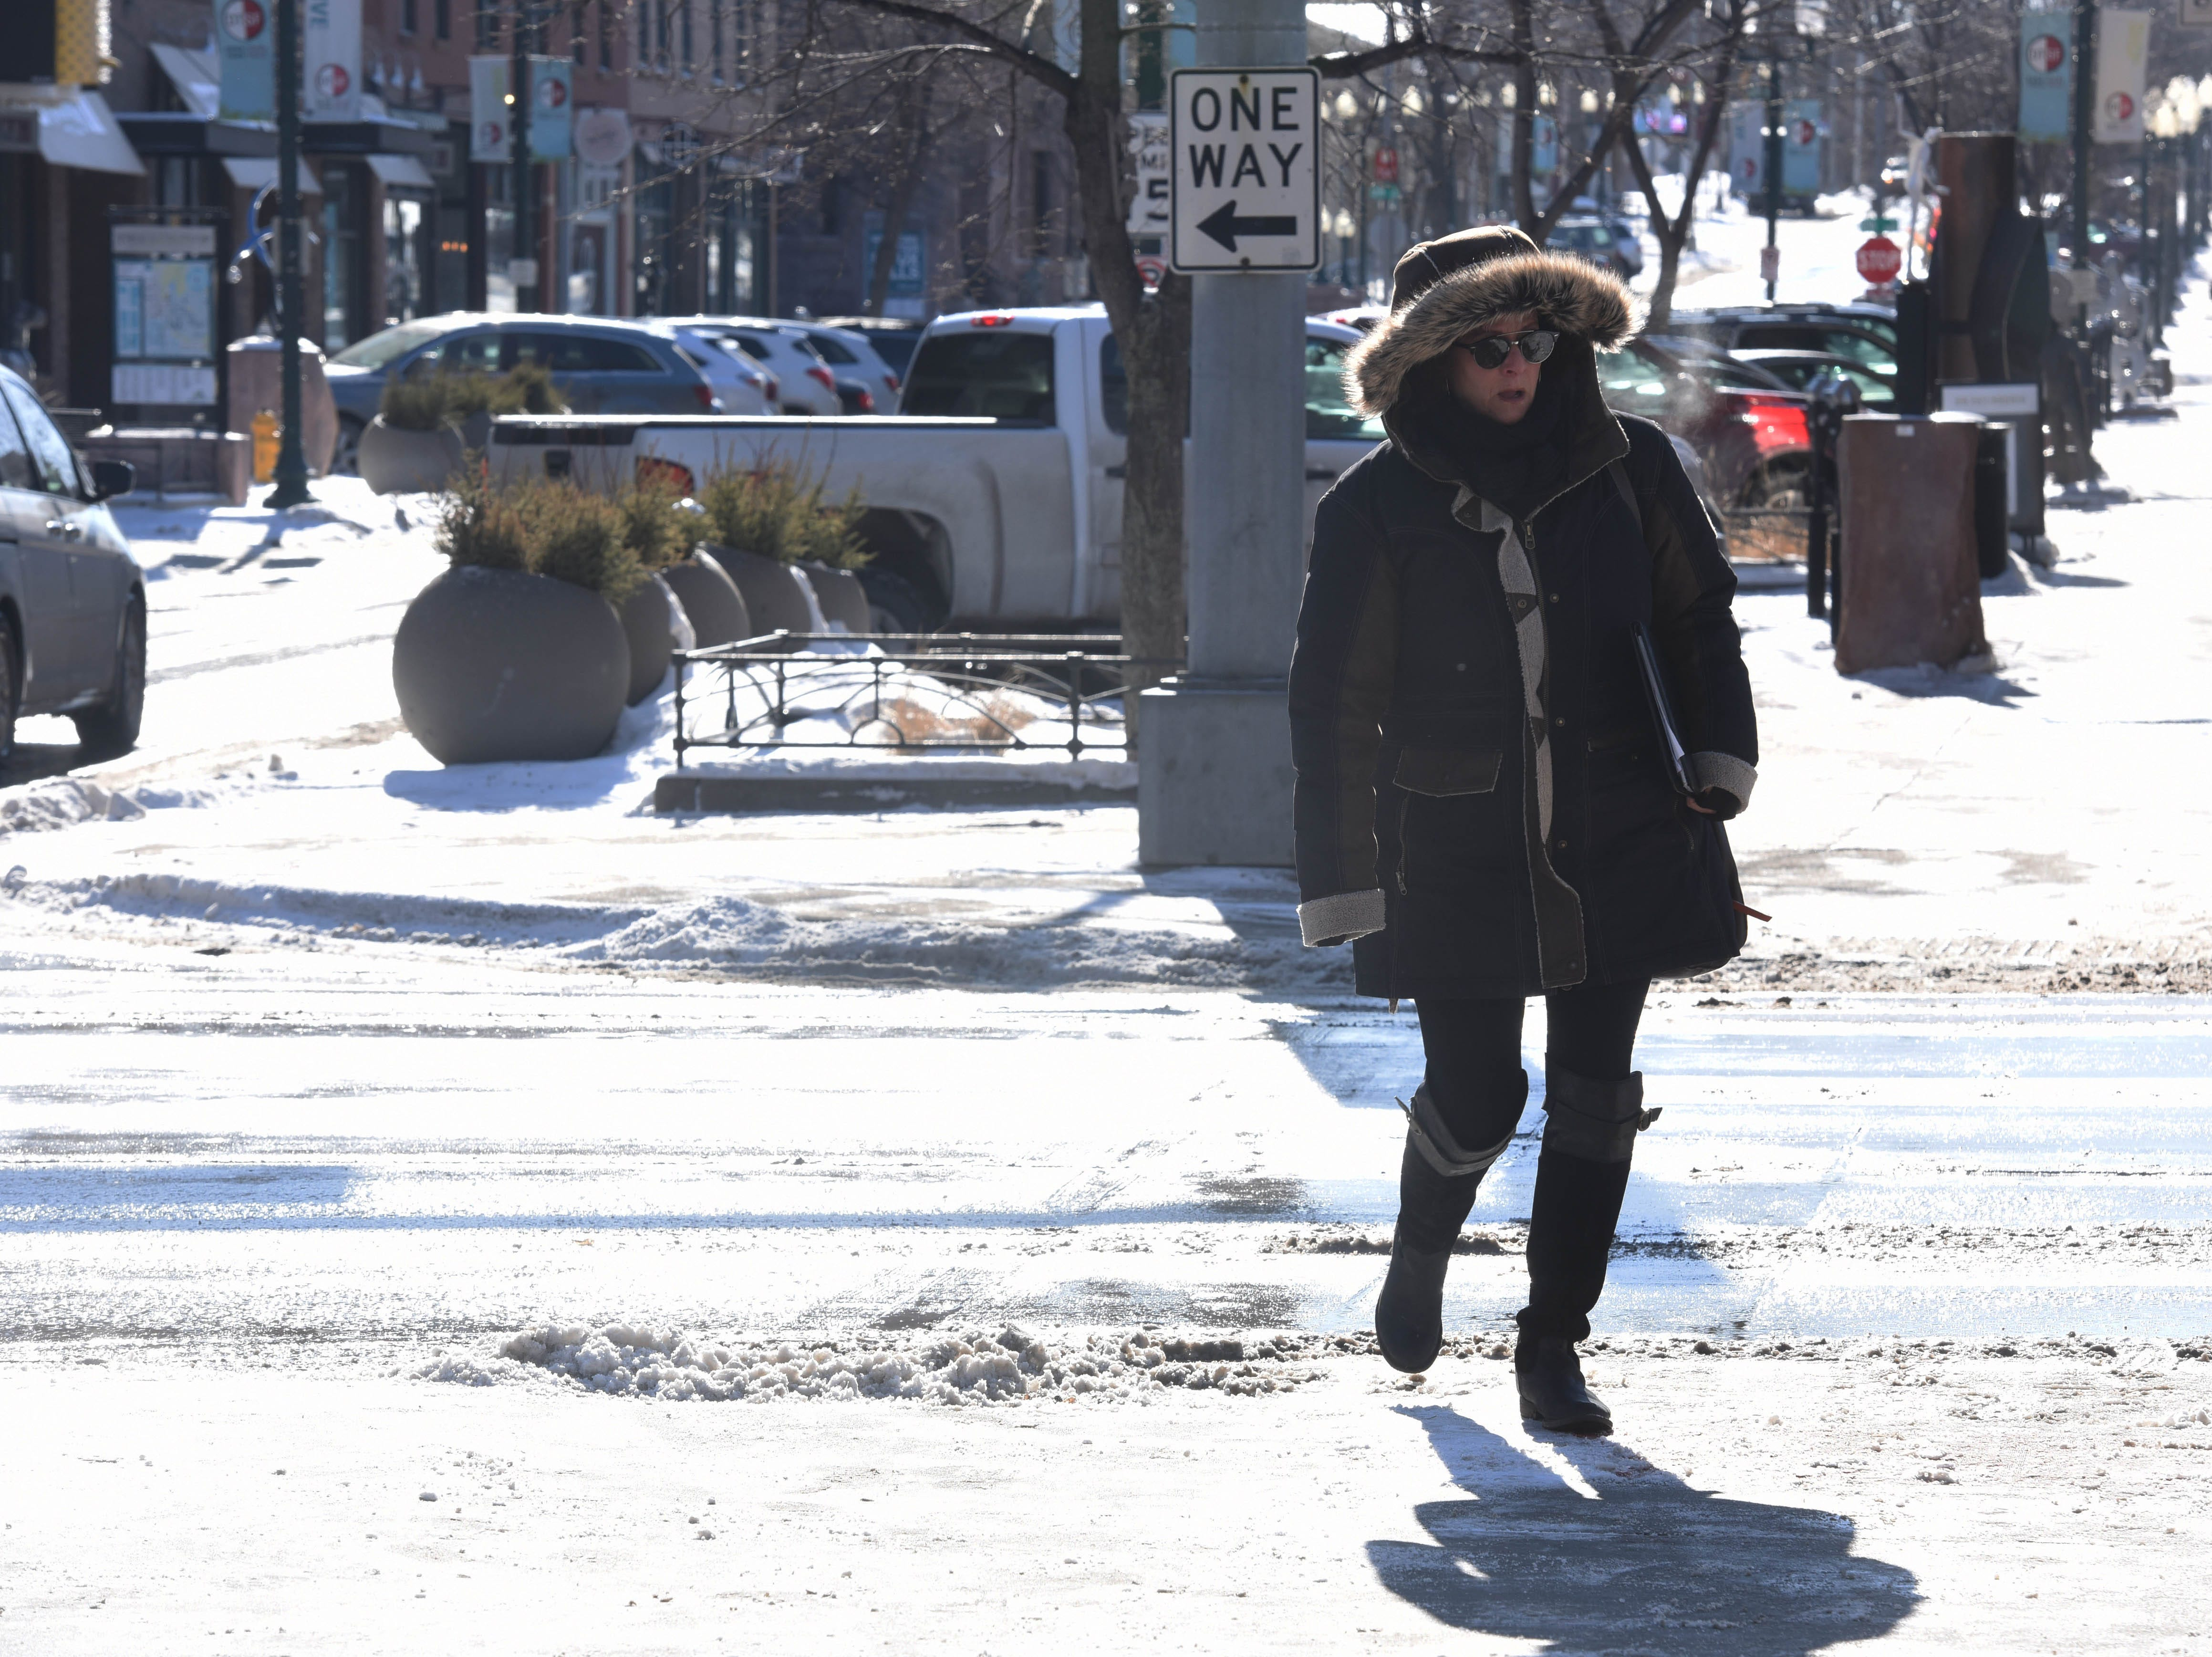 Sara Crosby walks through downtown Sioux Falls, S.D., Monday, Jan. 28, 2019.